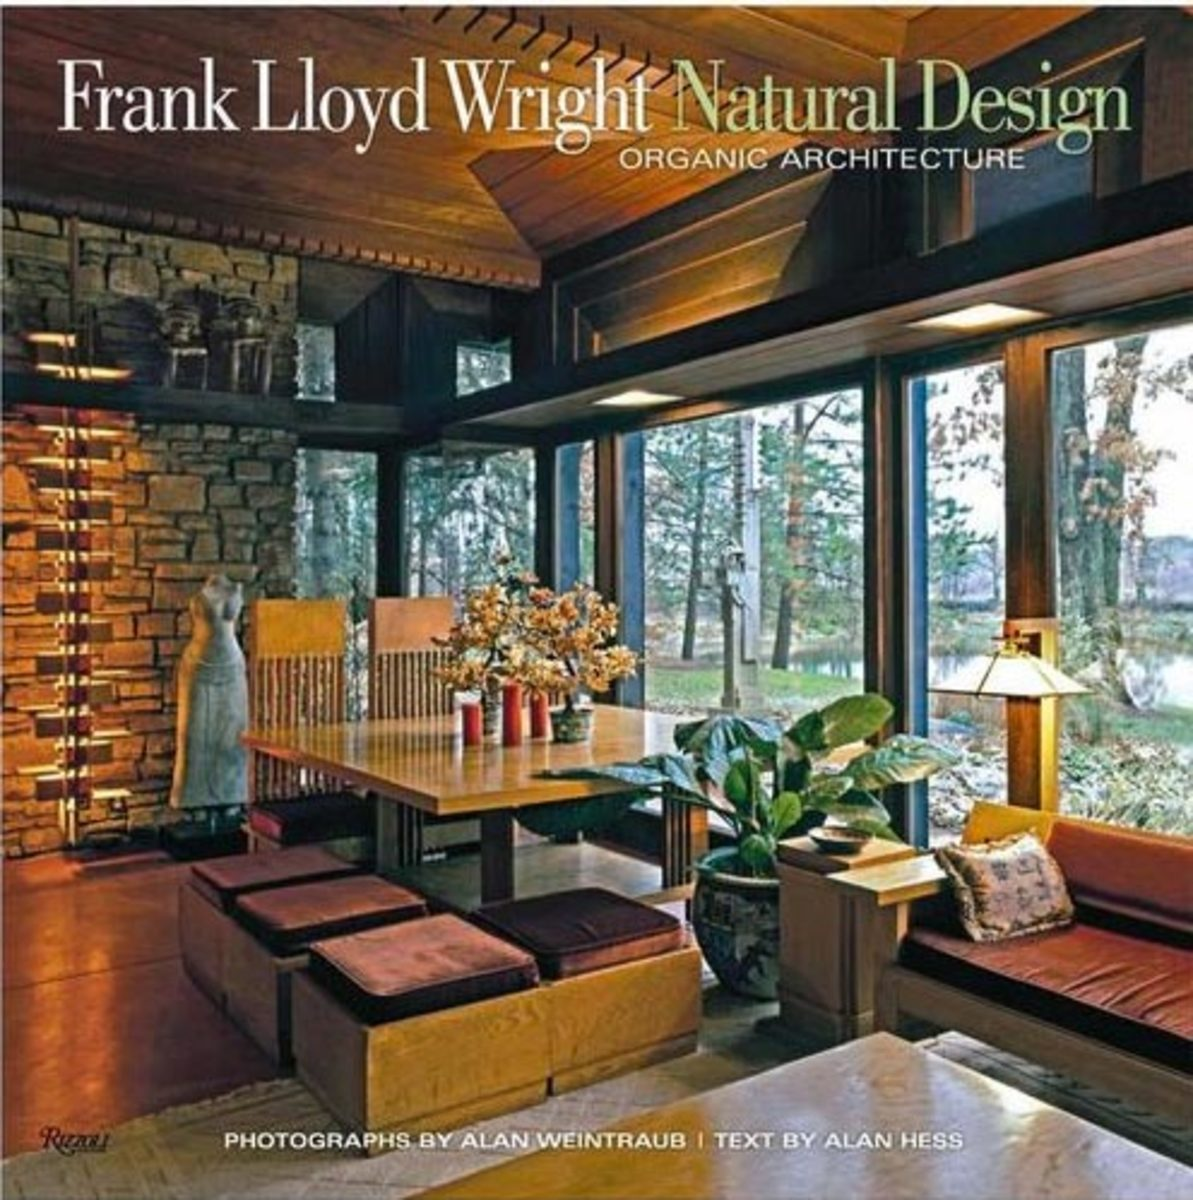 frank lloyd wright natural design organic architecture period